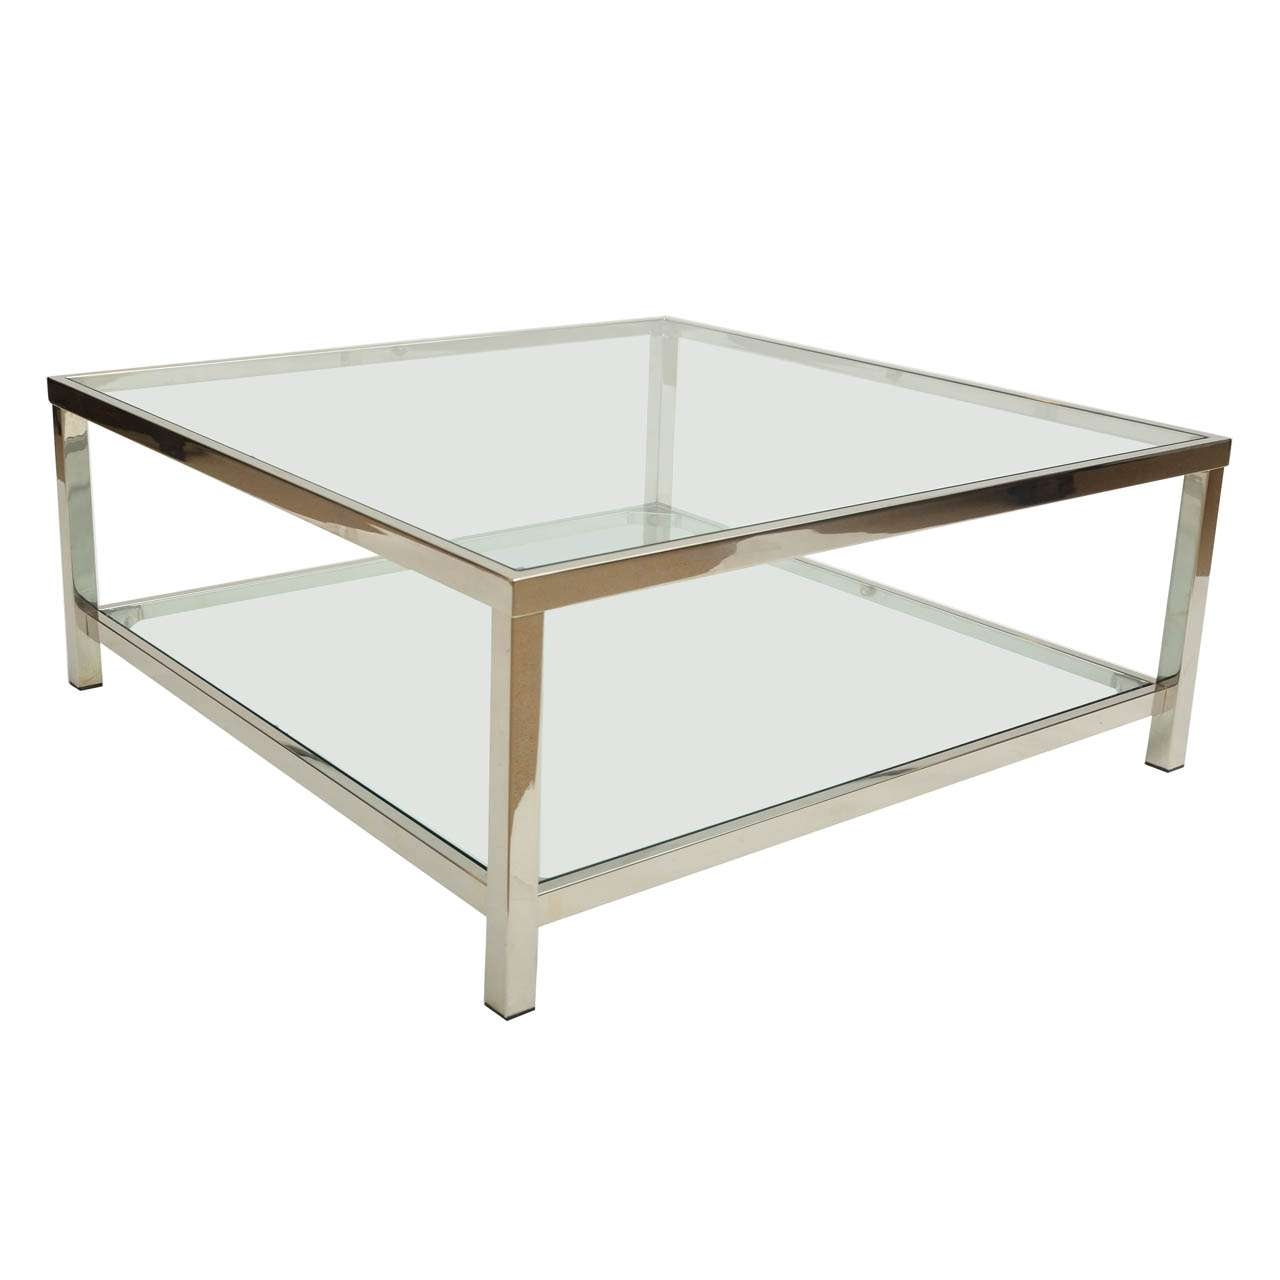 All You Need To Know About Glass And Chrome Coffee Tables Throughout Favorite Chrome Coffee Tables (Gallery 9 of 20)